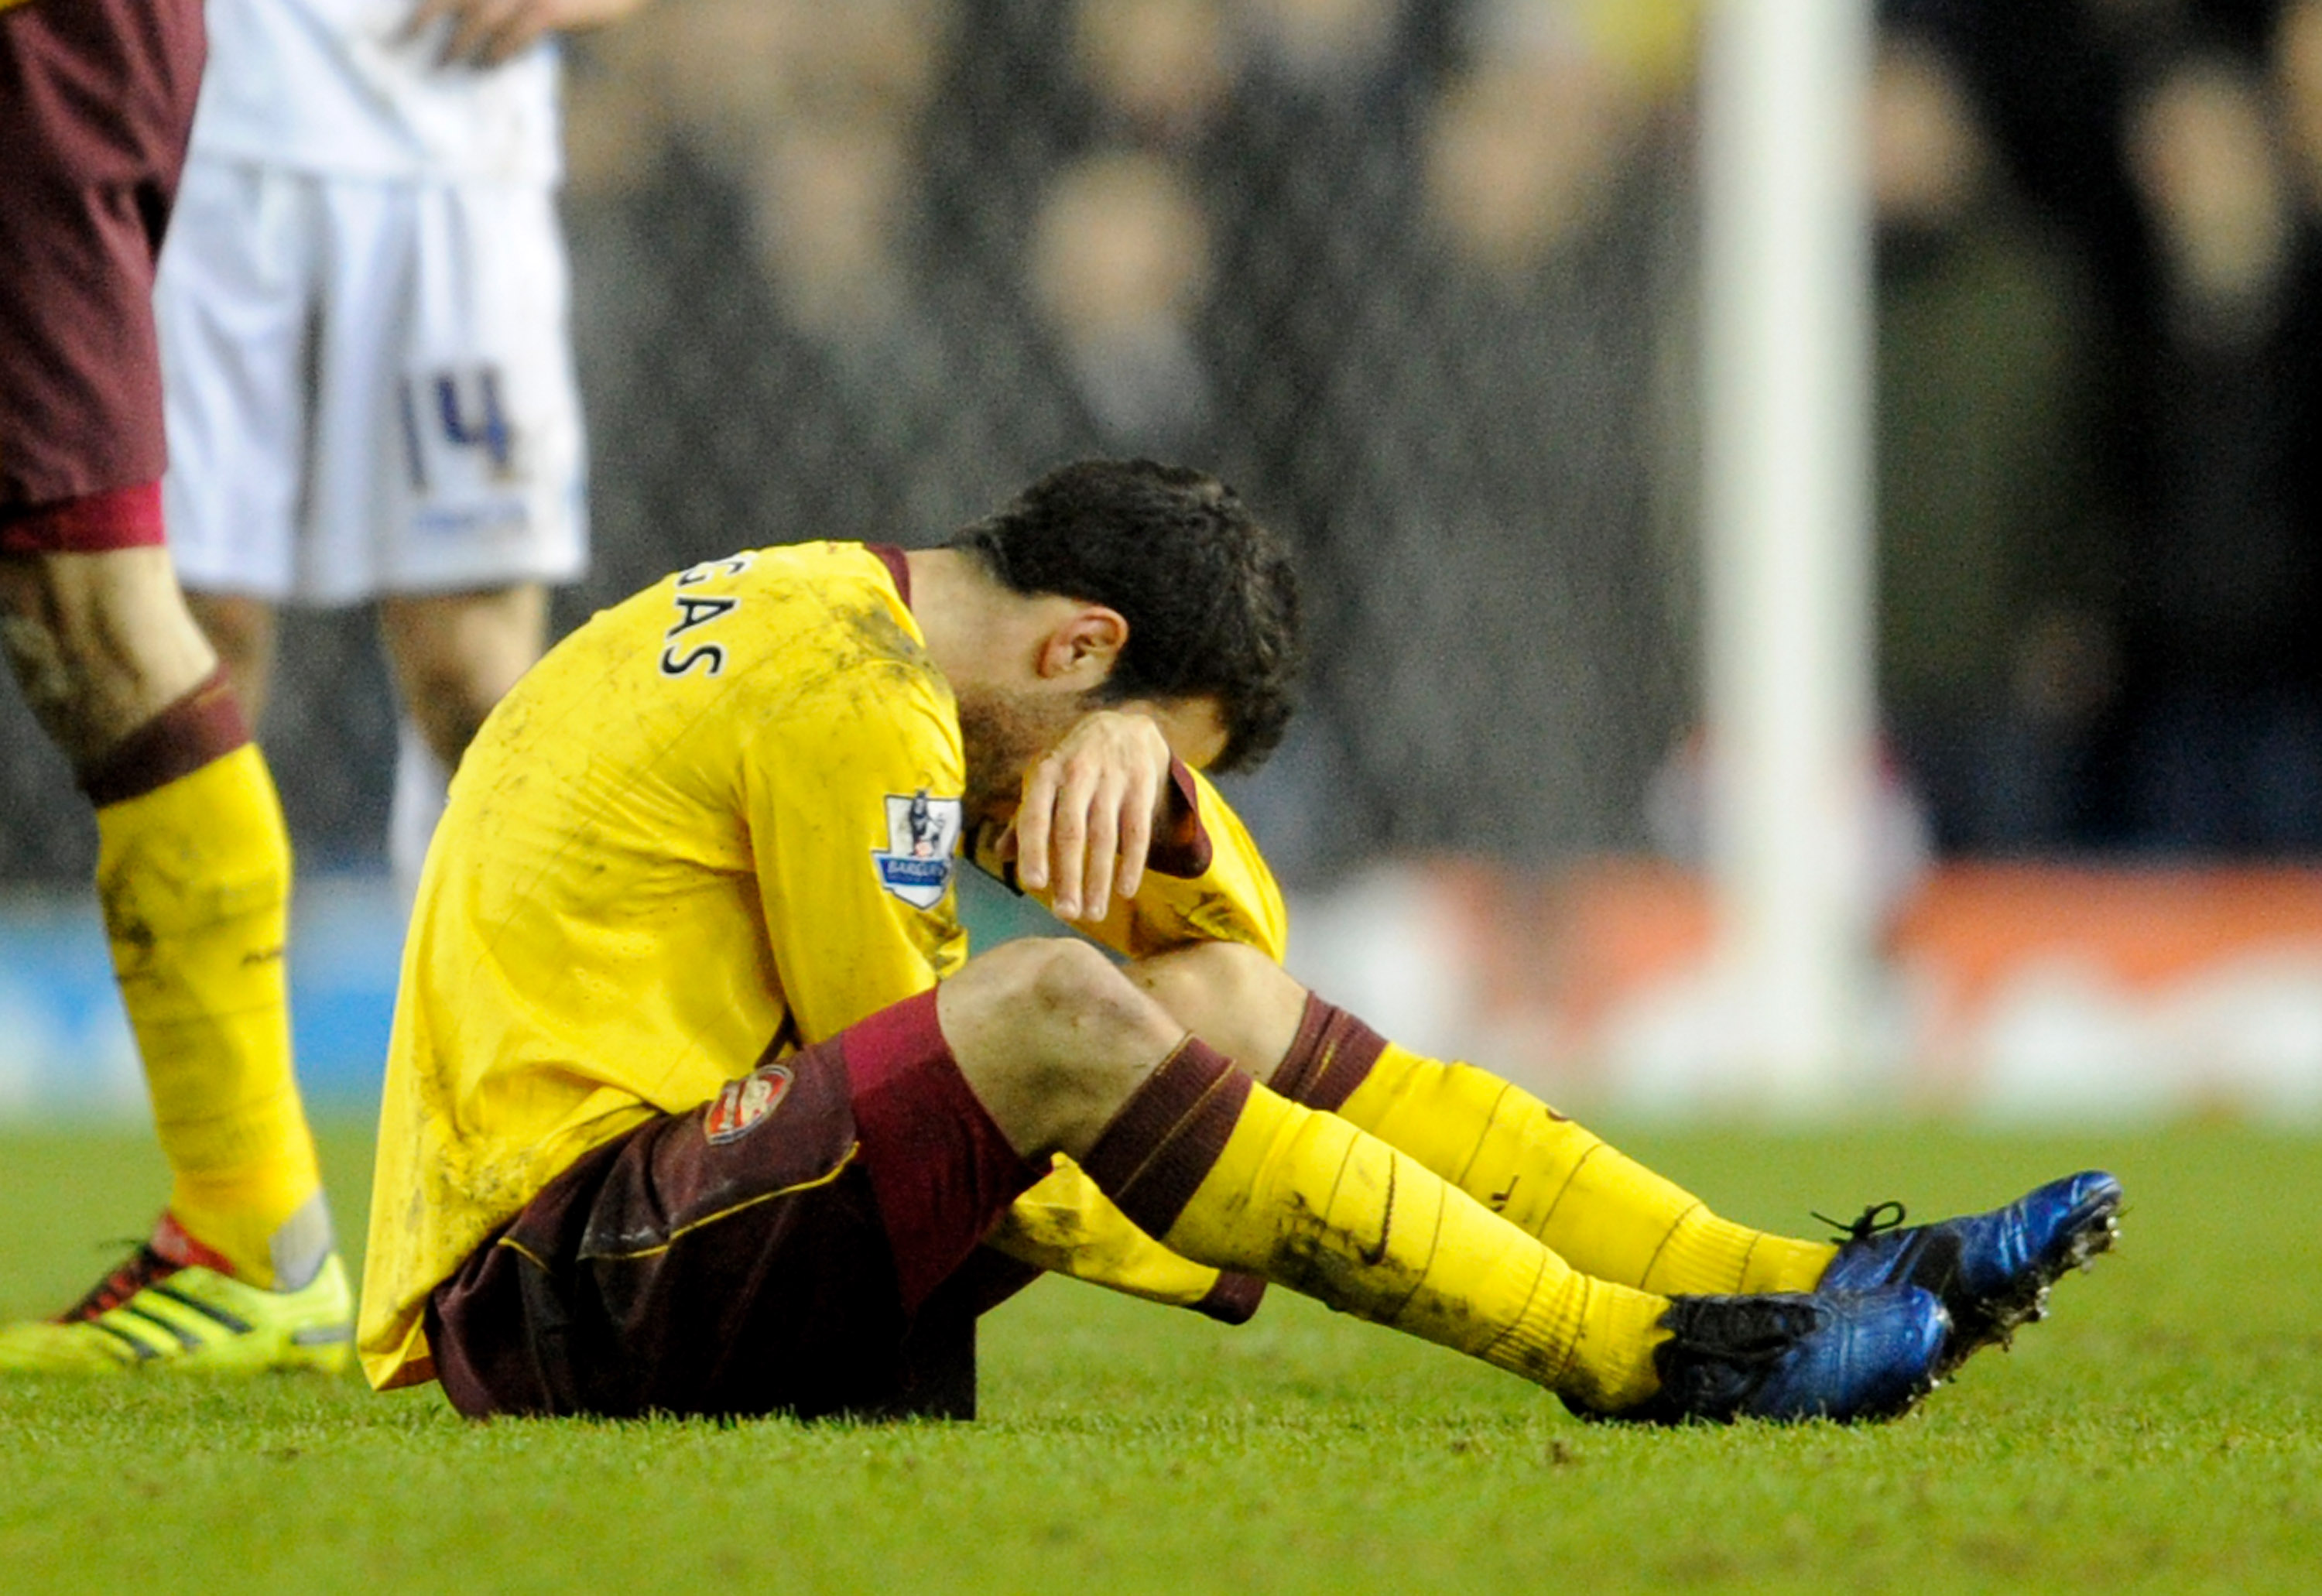 LEEDS, UNITED KINGDOM - JANUARY 19:   Cesc Fabregas of Arsenal goes down injured during the FA Cup sponsored by E.On Third Round Replay match between Leeds United and Arsenal at Elland Road on January 19, 2011 in Leeds, England. (Photo by Michael Regan/Ge